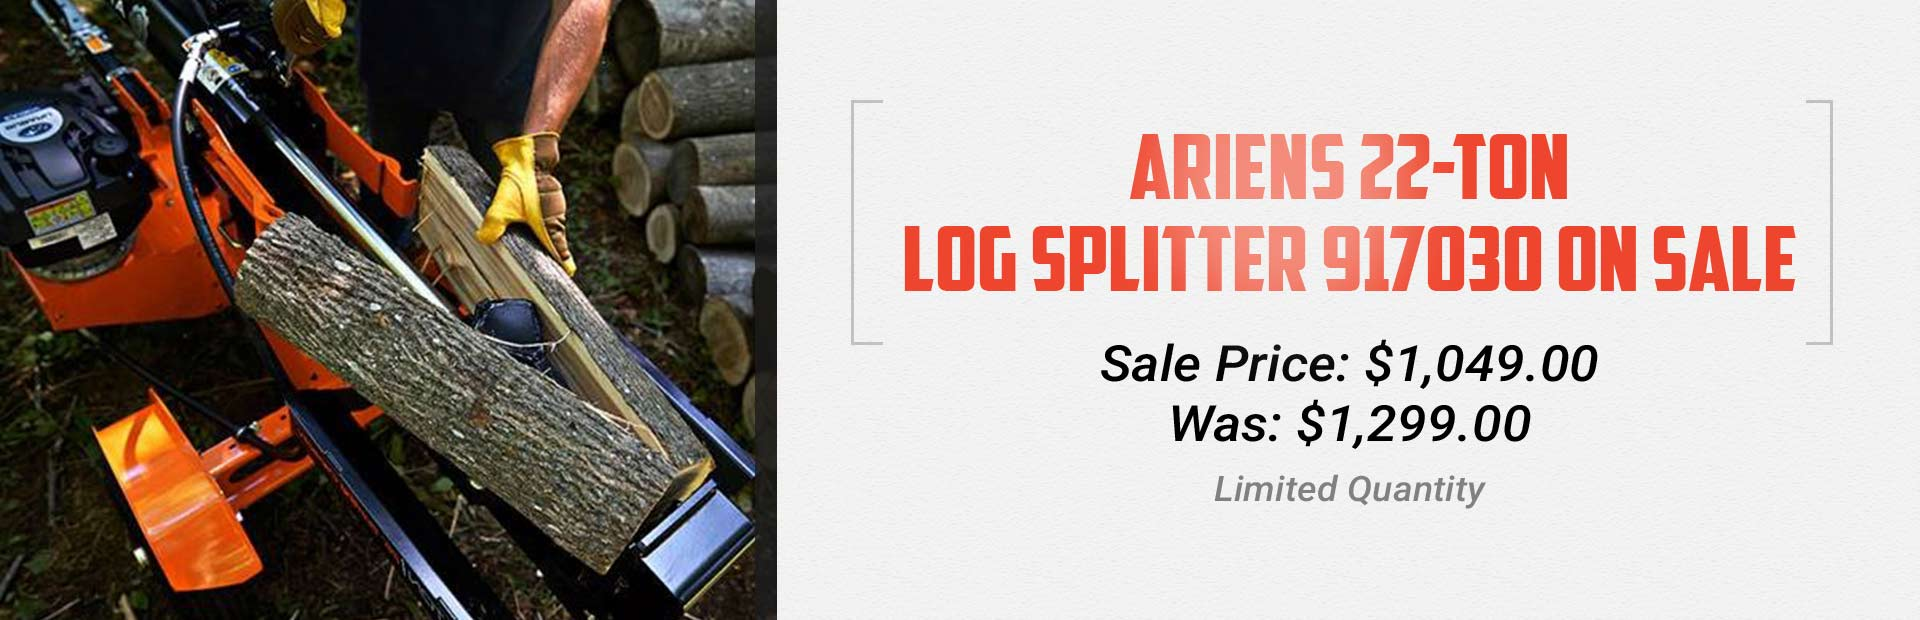 Ariens 22-Ton Log Splitter 917030 on Sale: Click here for details.